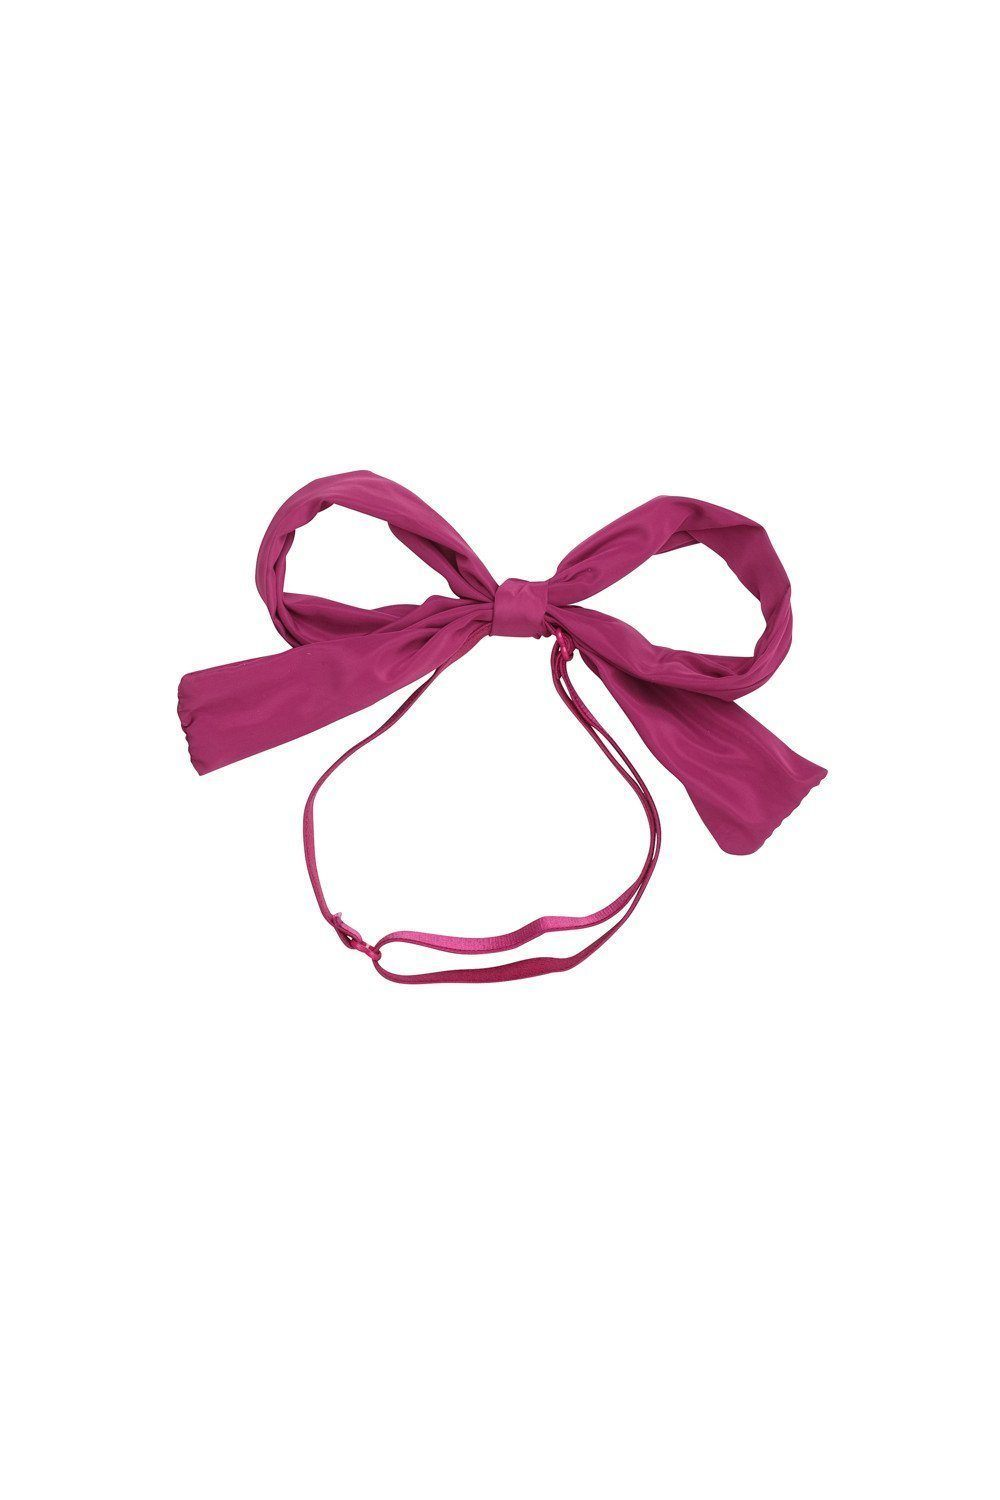 Party Bow Taffeta Wrap - Raspberry - PROJECT 6, modest fashion